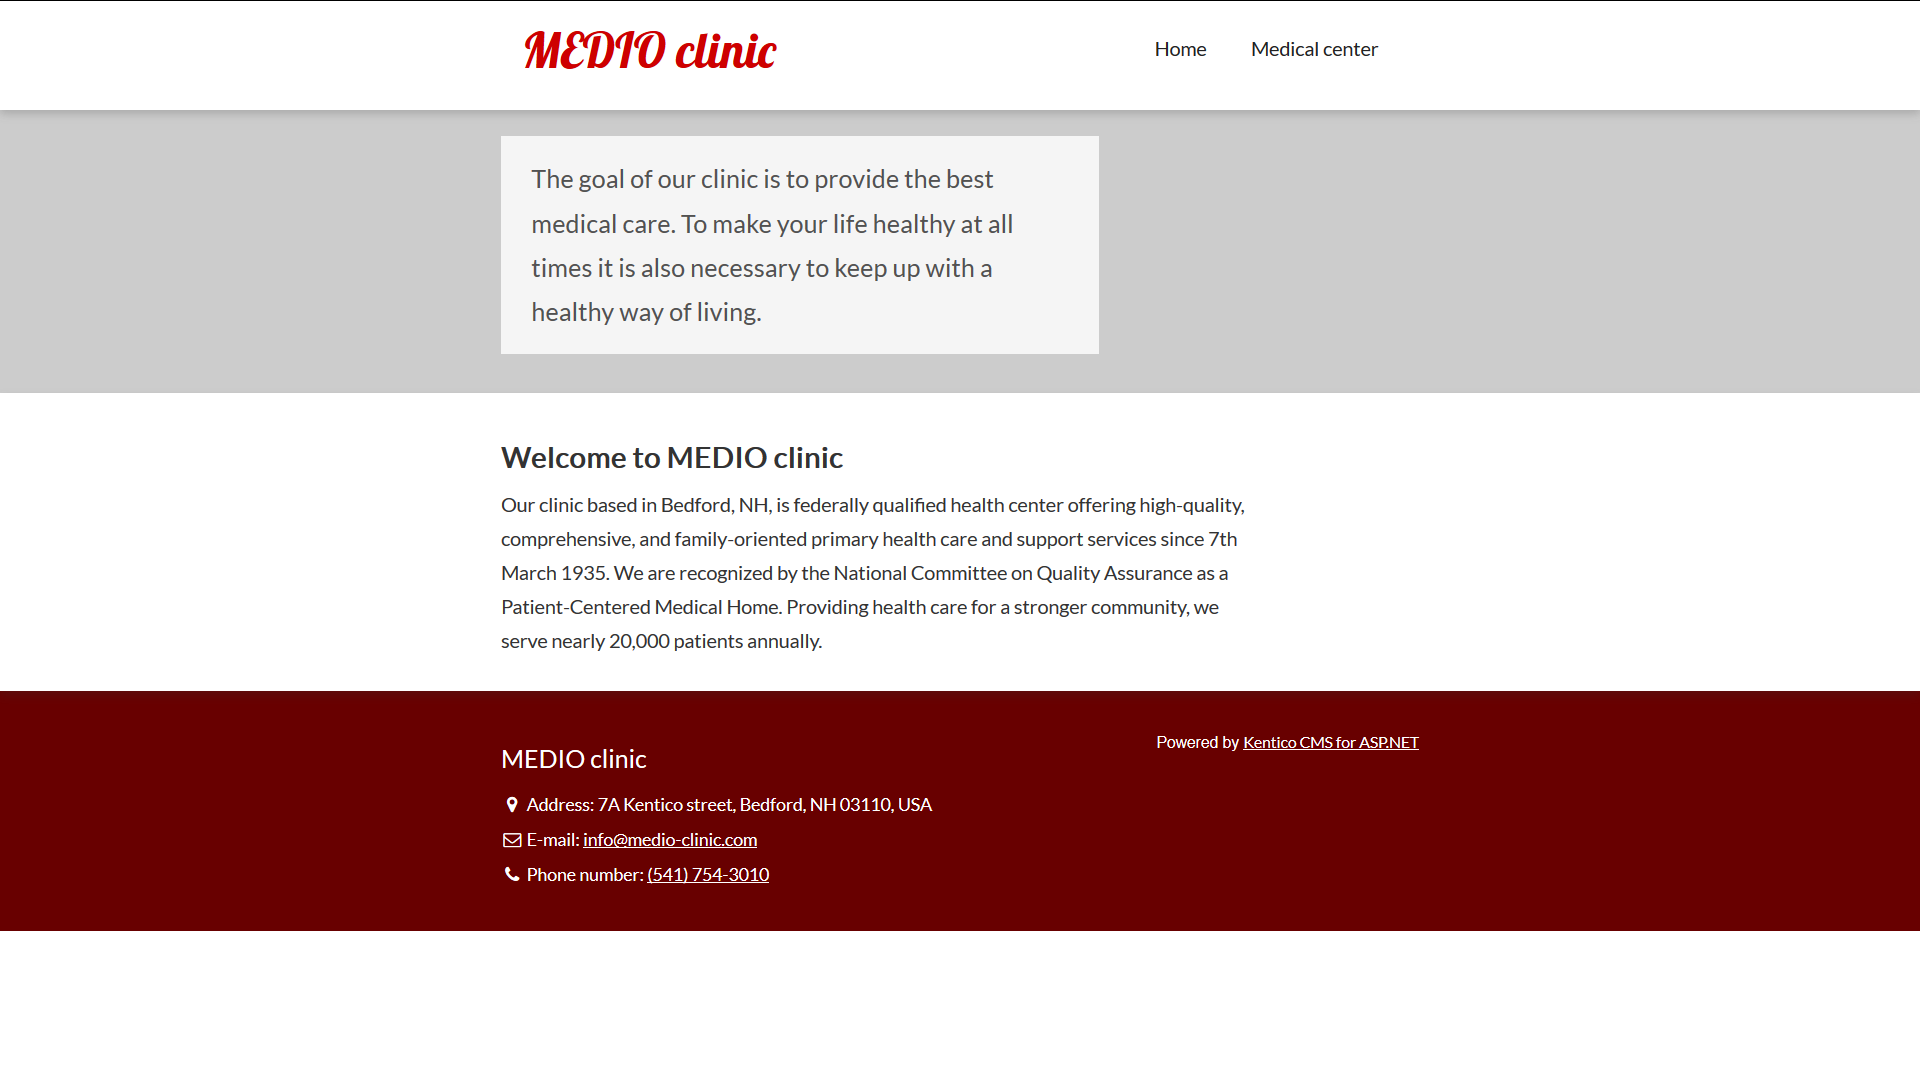 The Medio Clinic's Home page on the live site